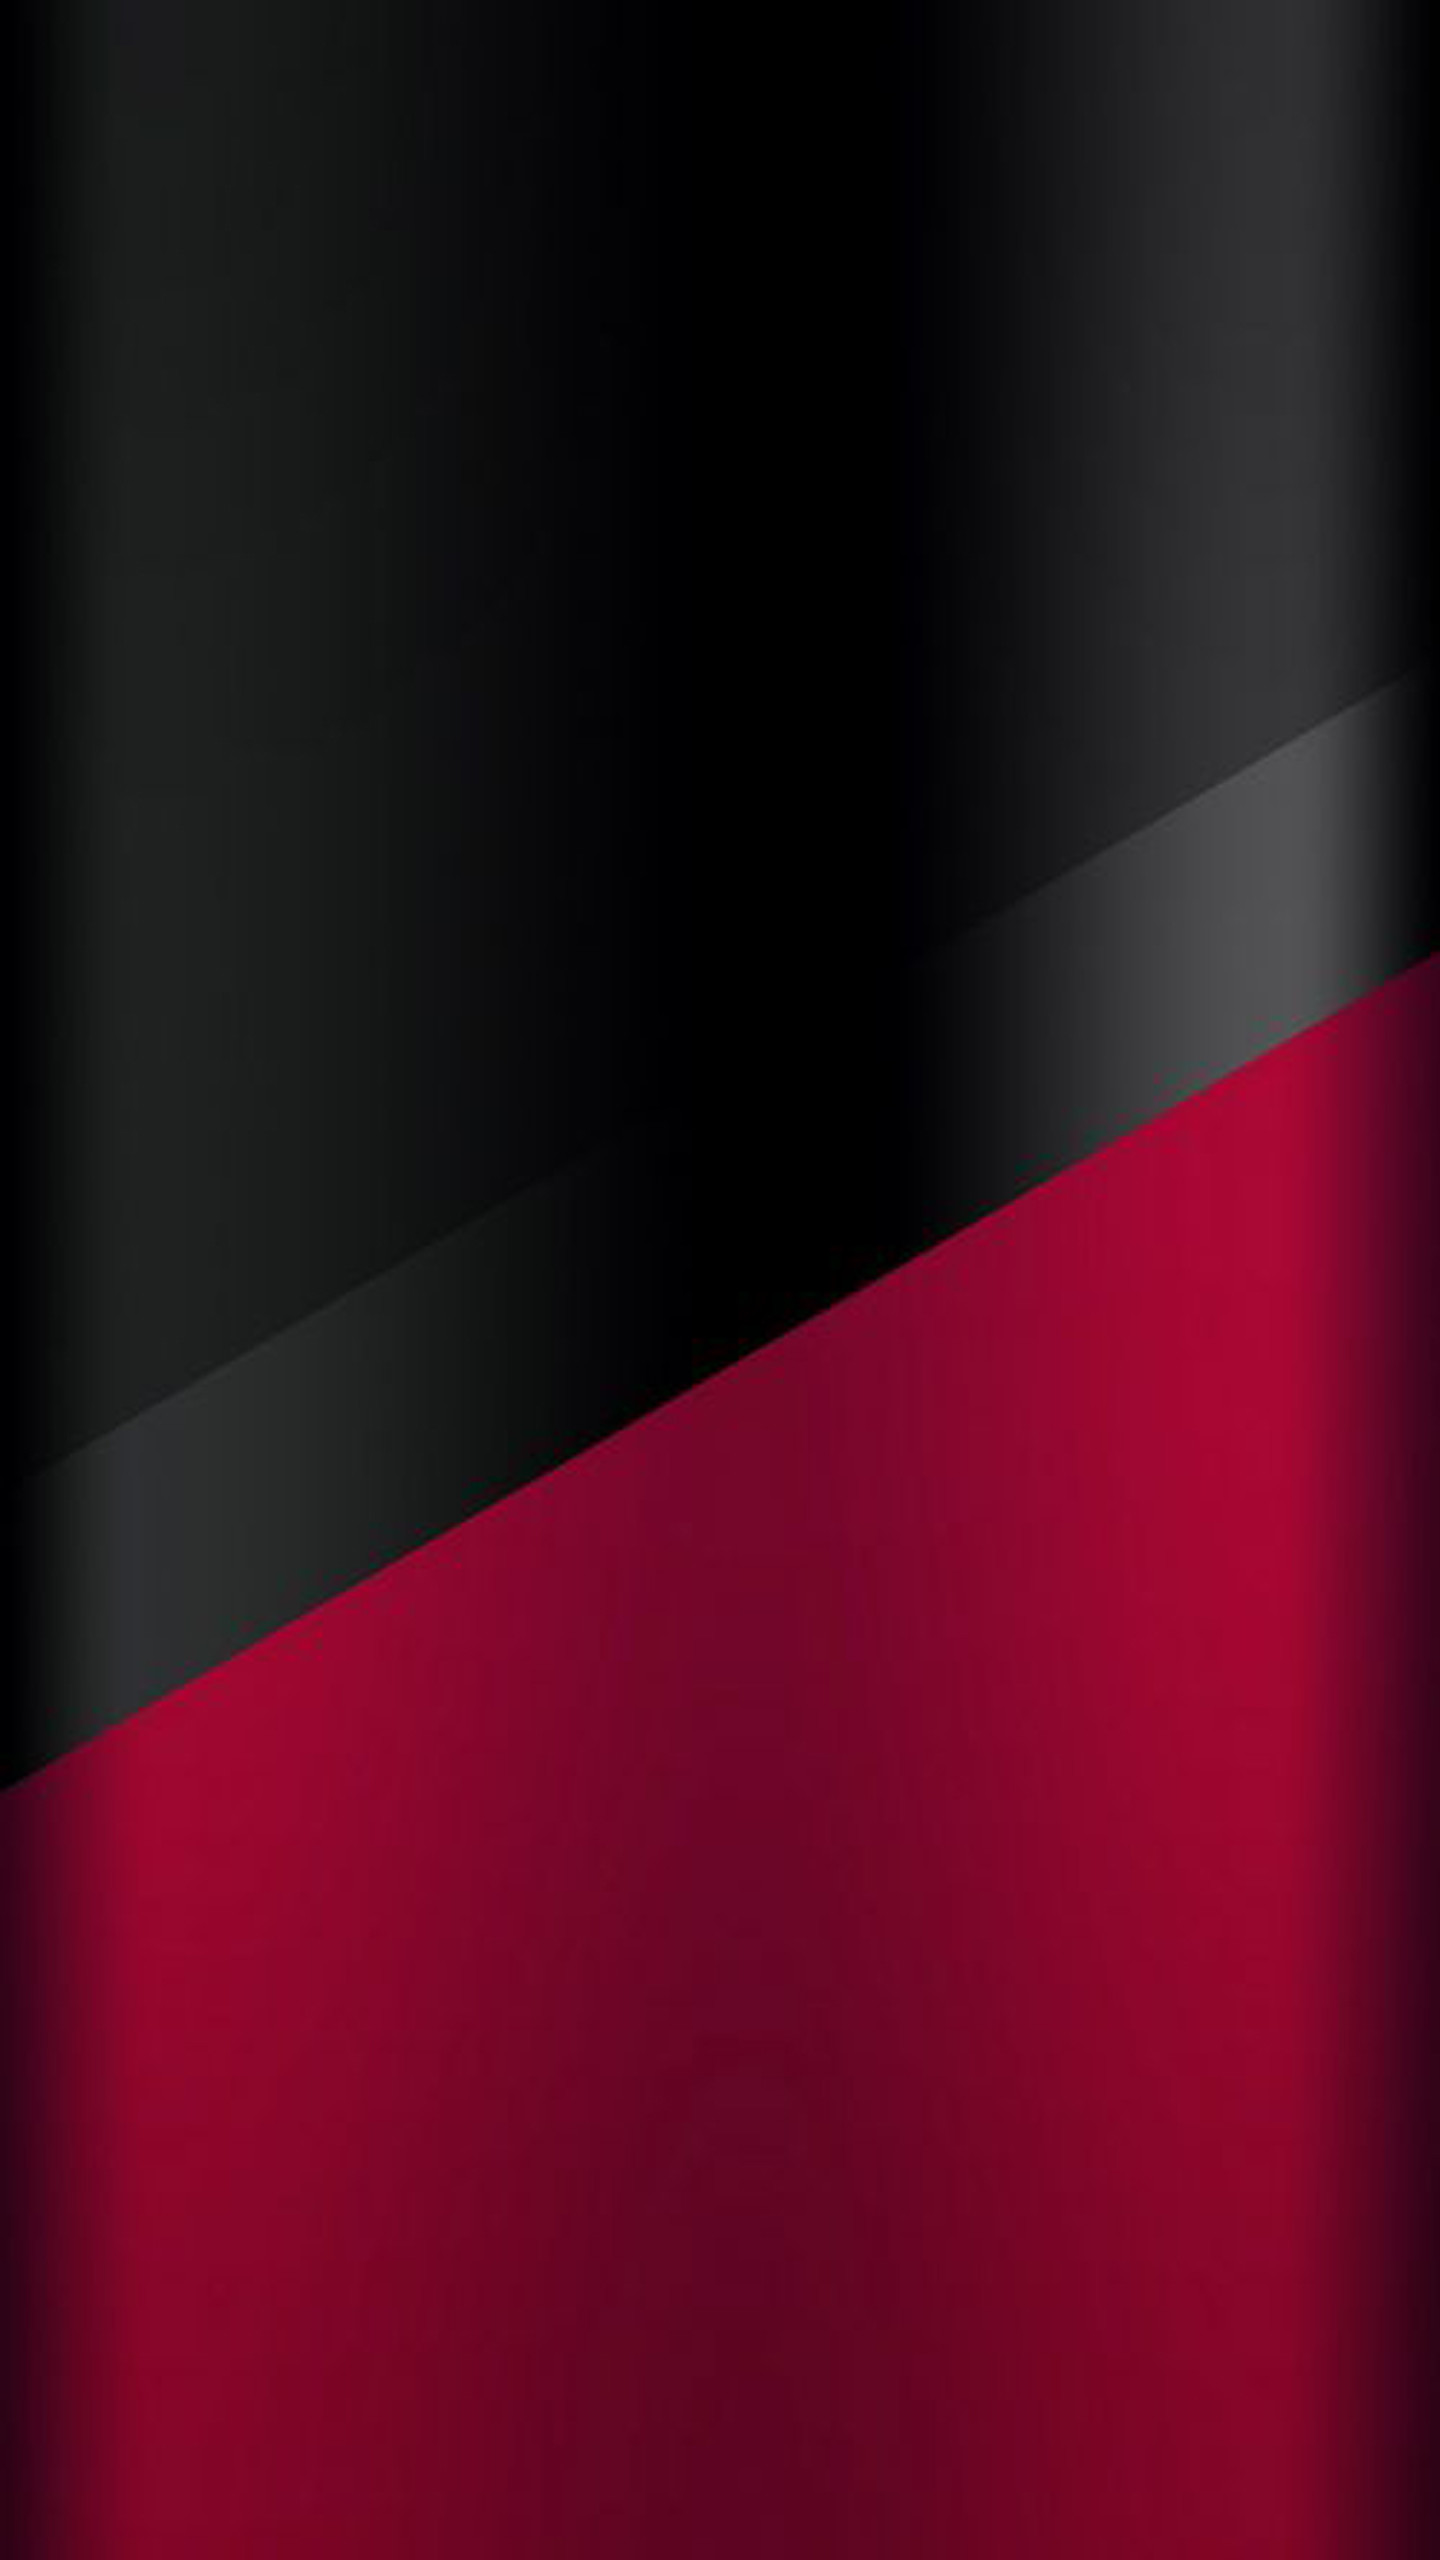 … The Dark S7 Edge wallpaper 03 with black and red color